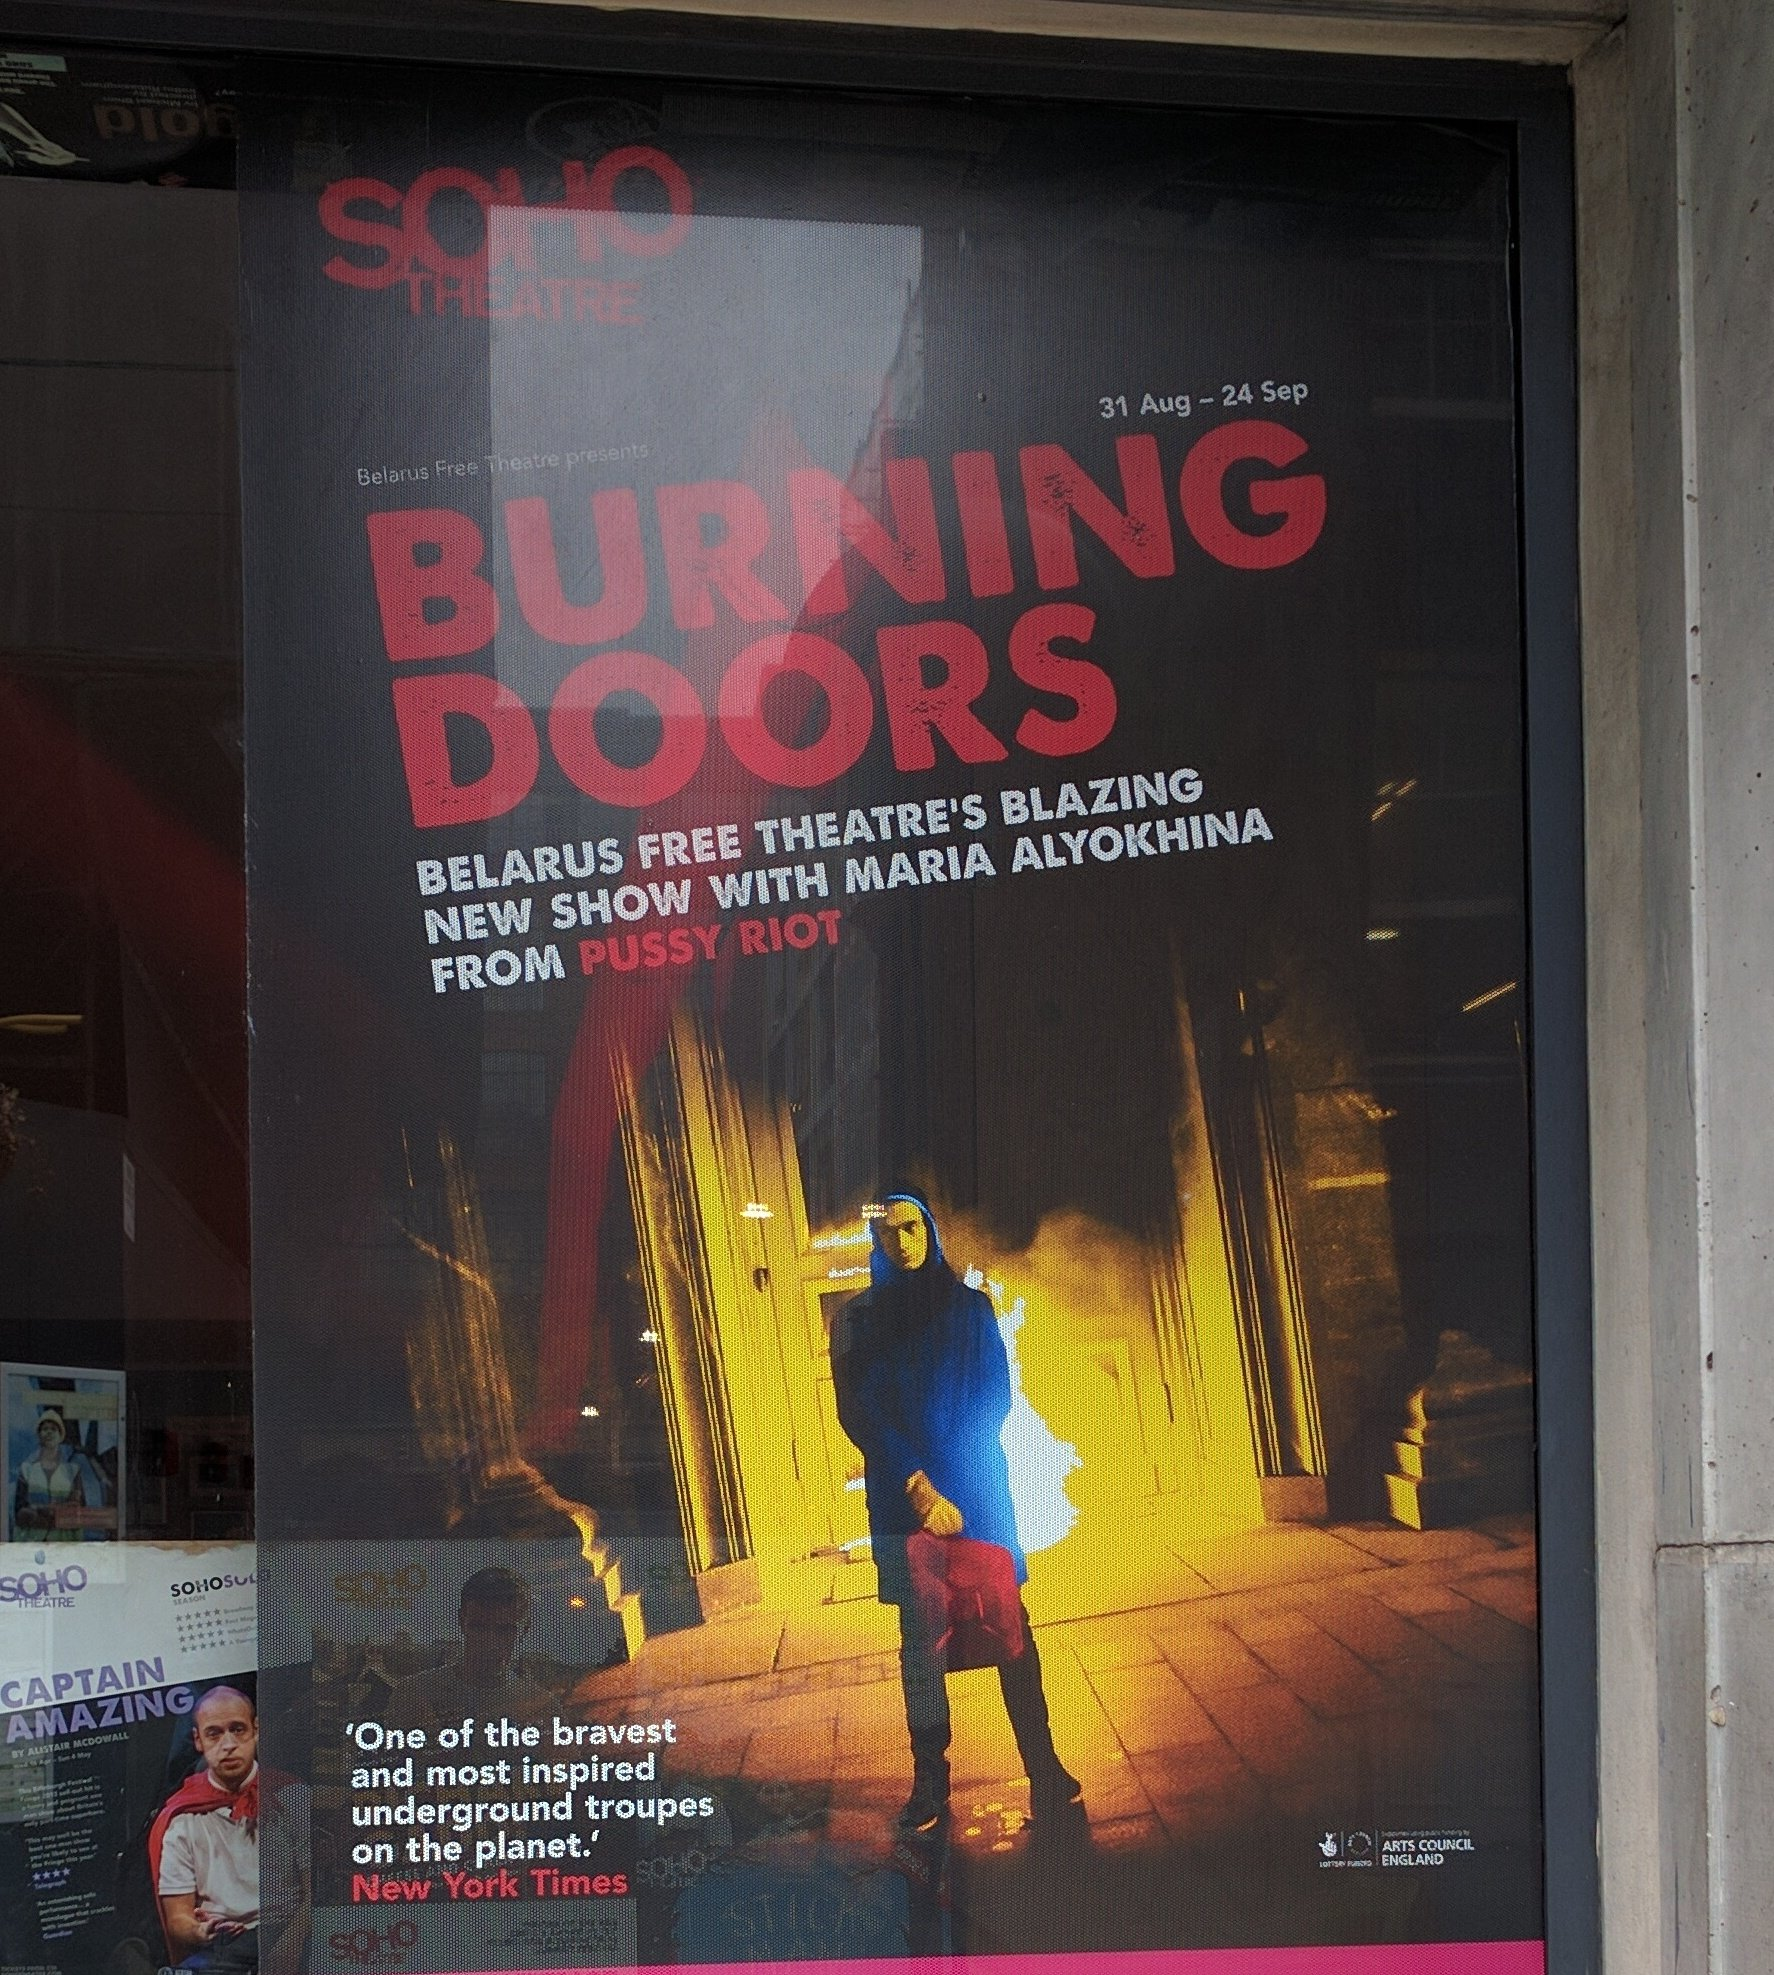 Intense, overwhelming and powerful political art from @BFreeTheatre #BurningDoors @sohotheatre #FreeSentsov https://t.co/Xrt5Gsfocw